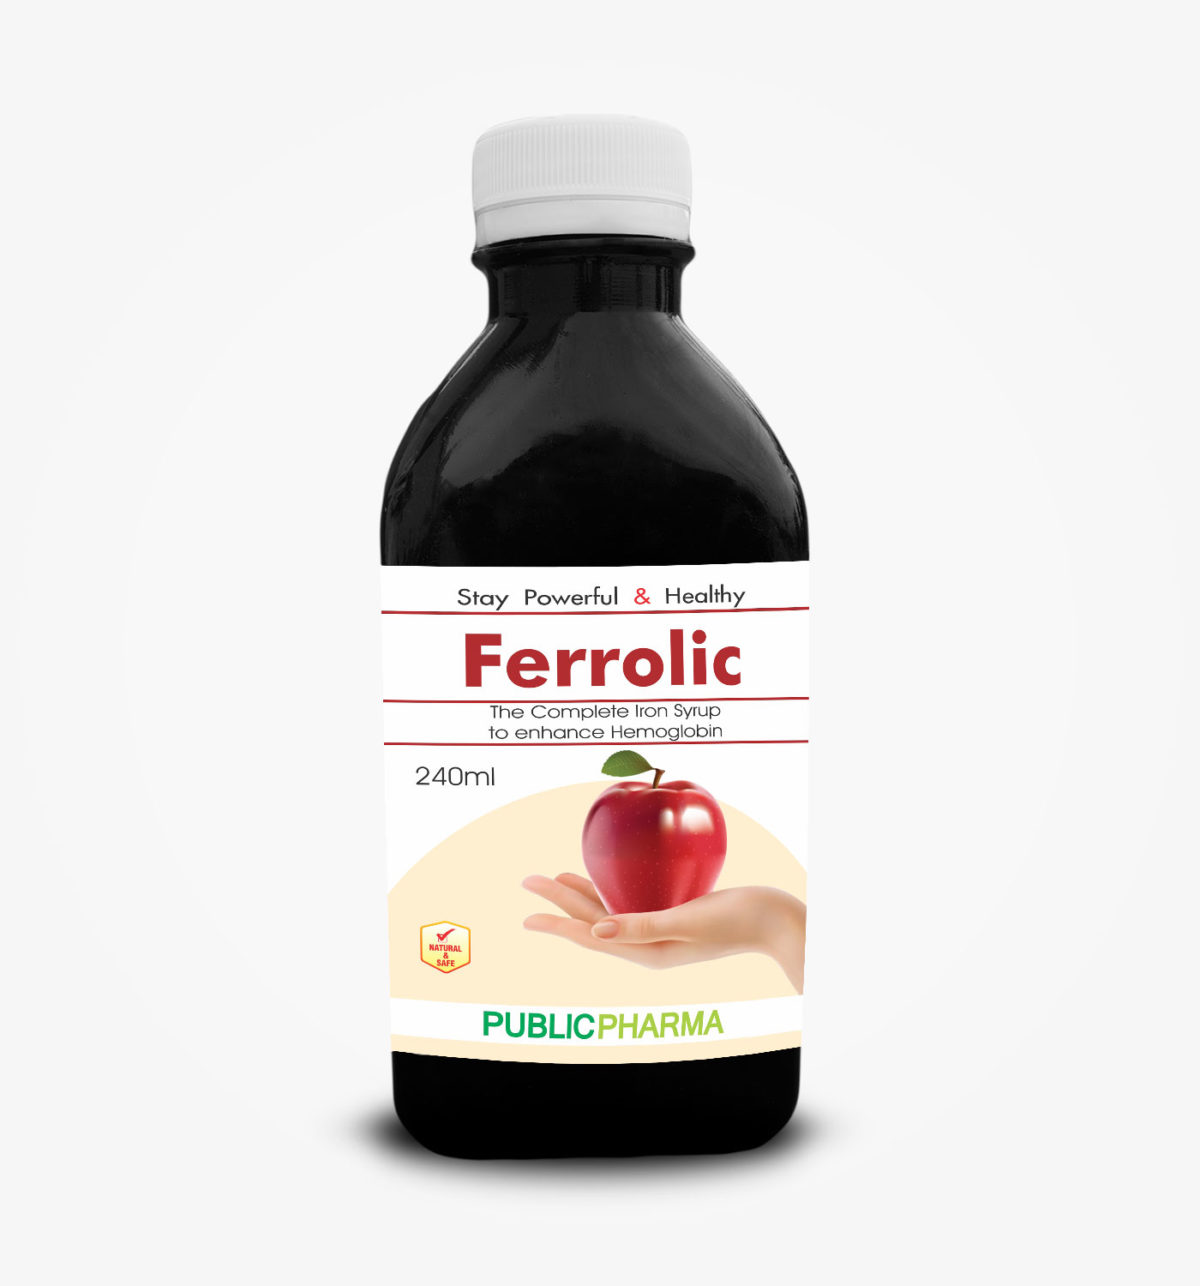 Anemia Decrease levels of hemoglobin during pregnancy and lactation Blood loss due to menstrual problems,Ferrolic increases the level of Hemoglobin, vemoues debility.